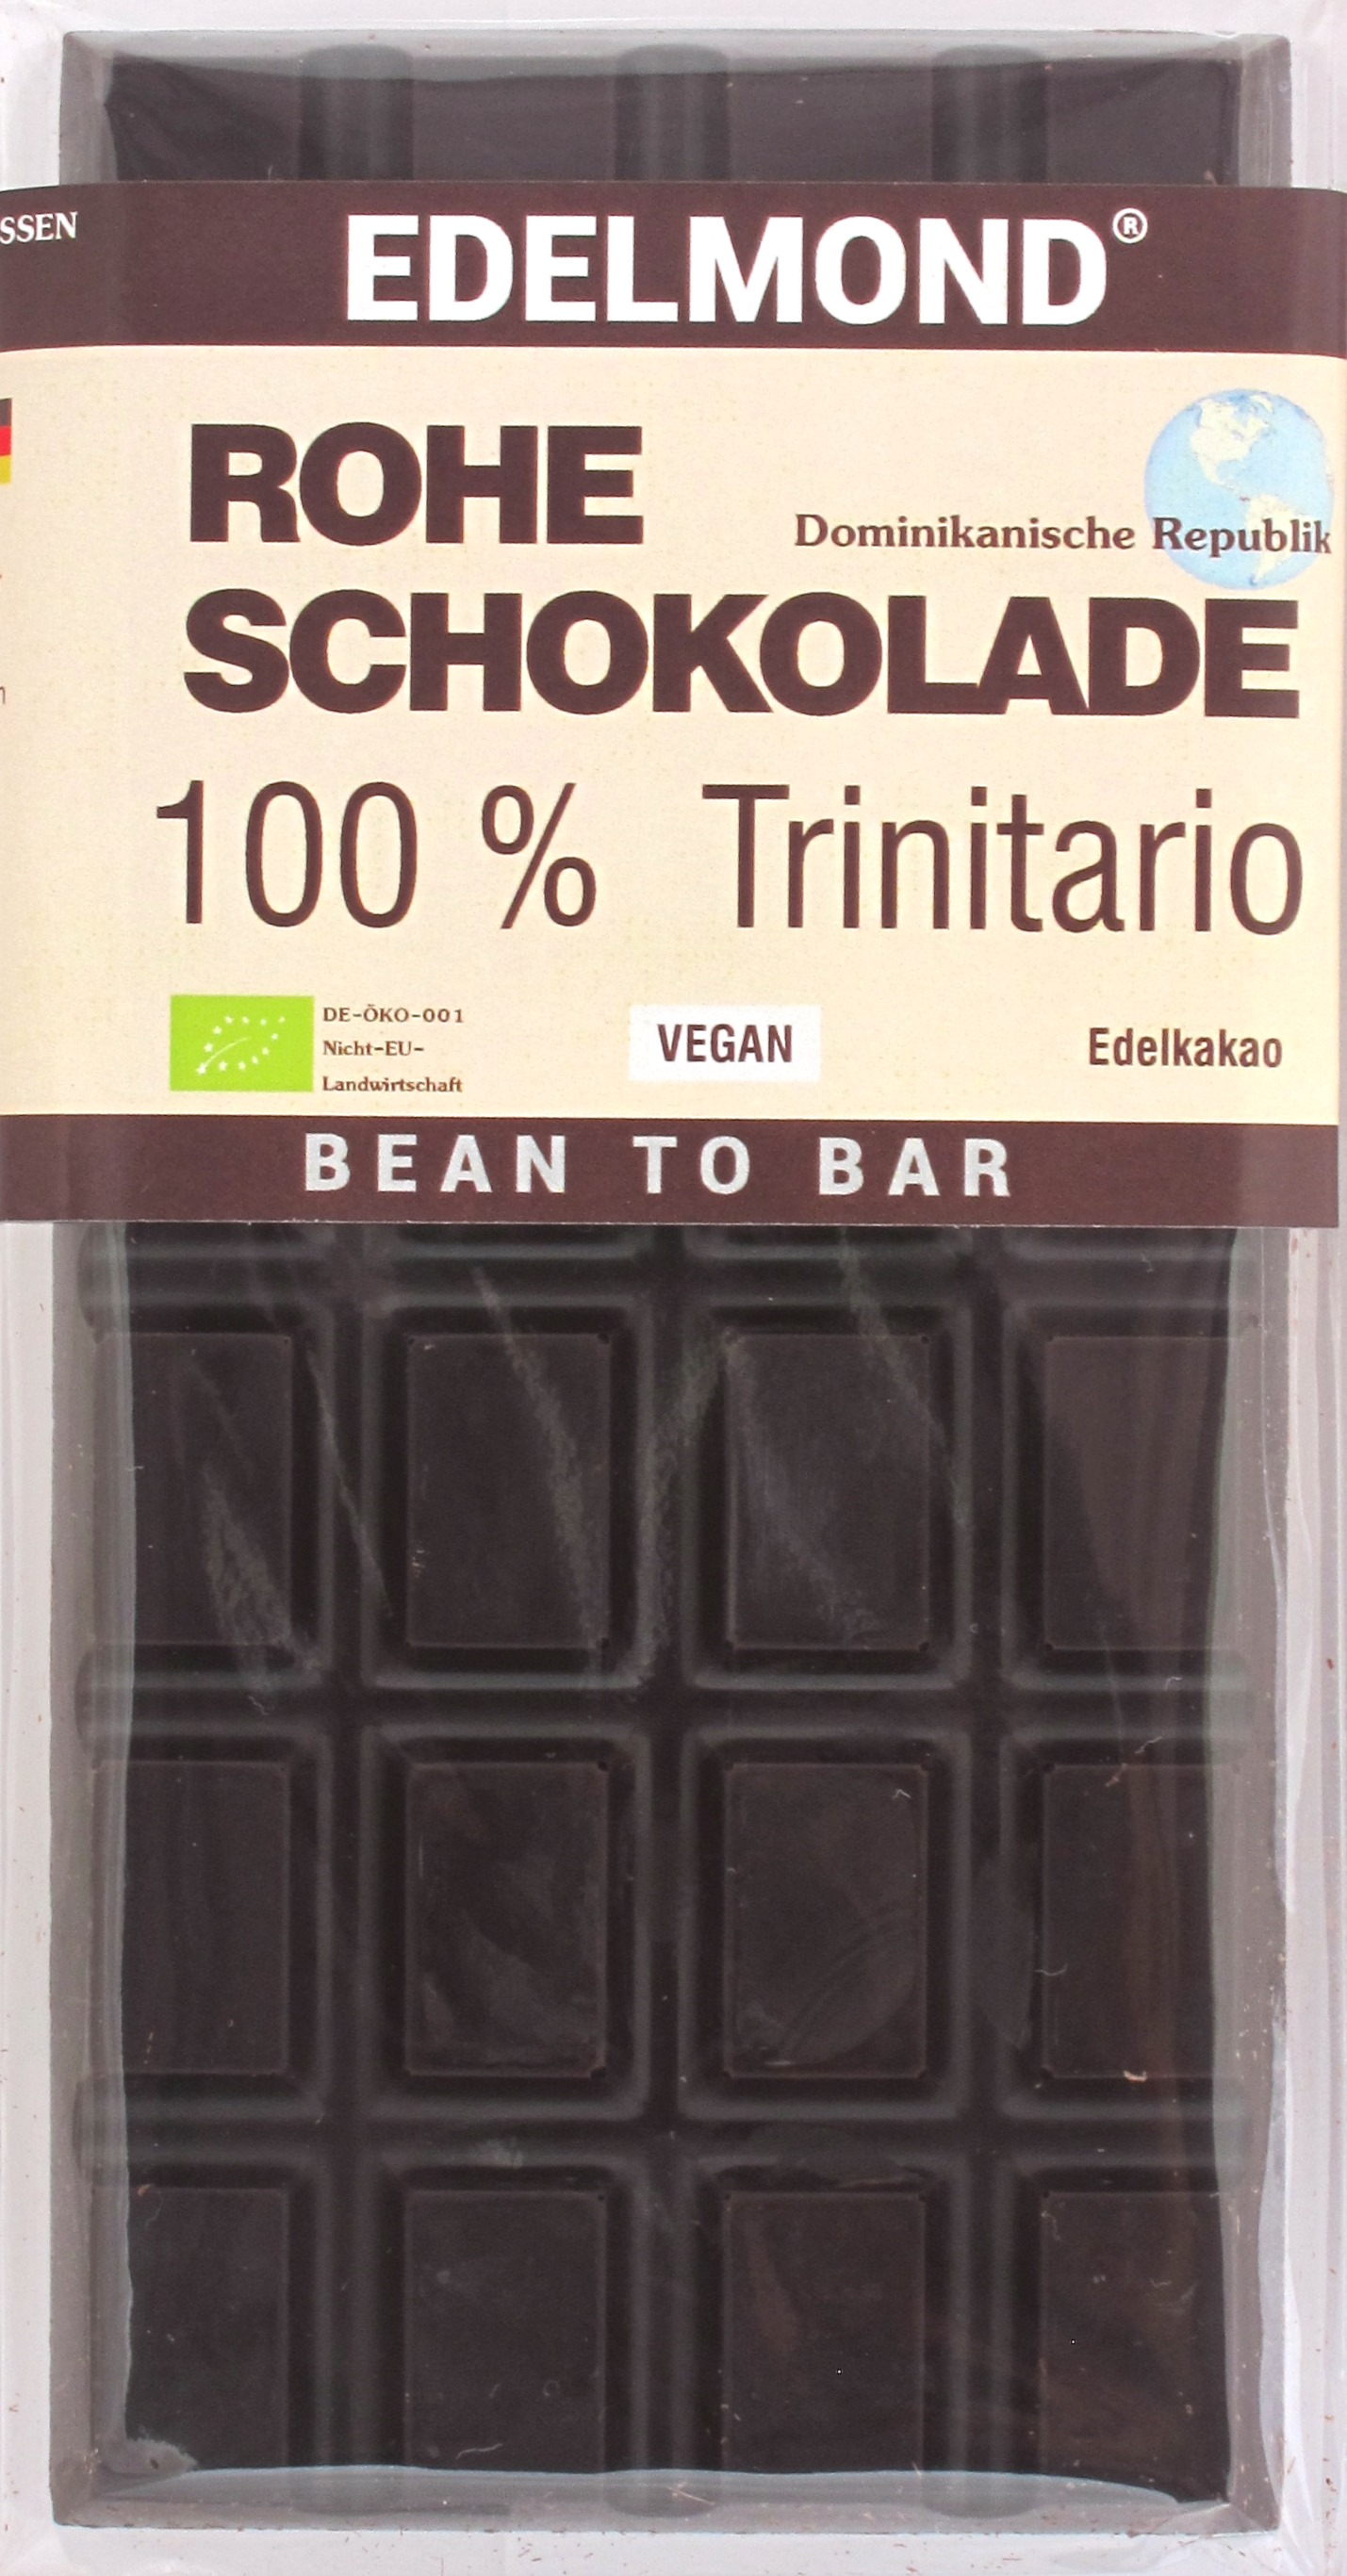 Edelmond 100% Trinitario Raw Chocolate, Dominikanische Republik